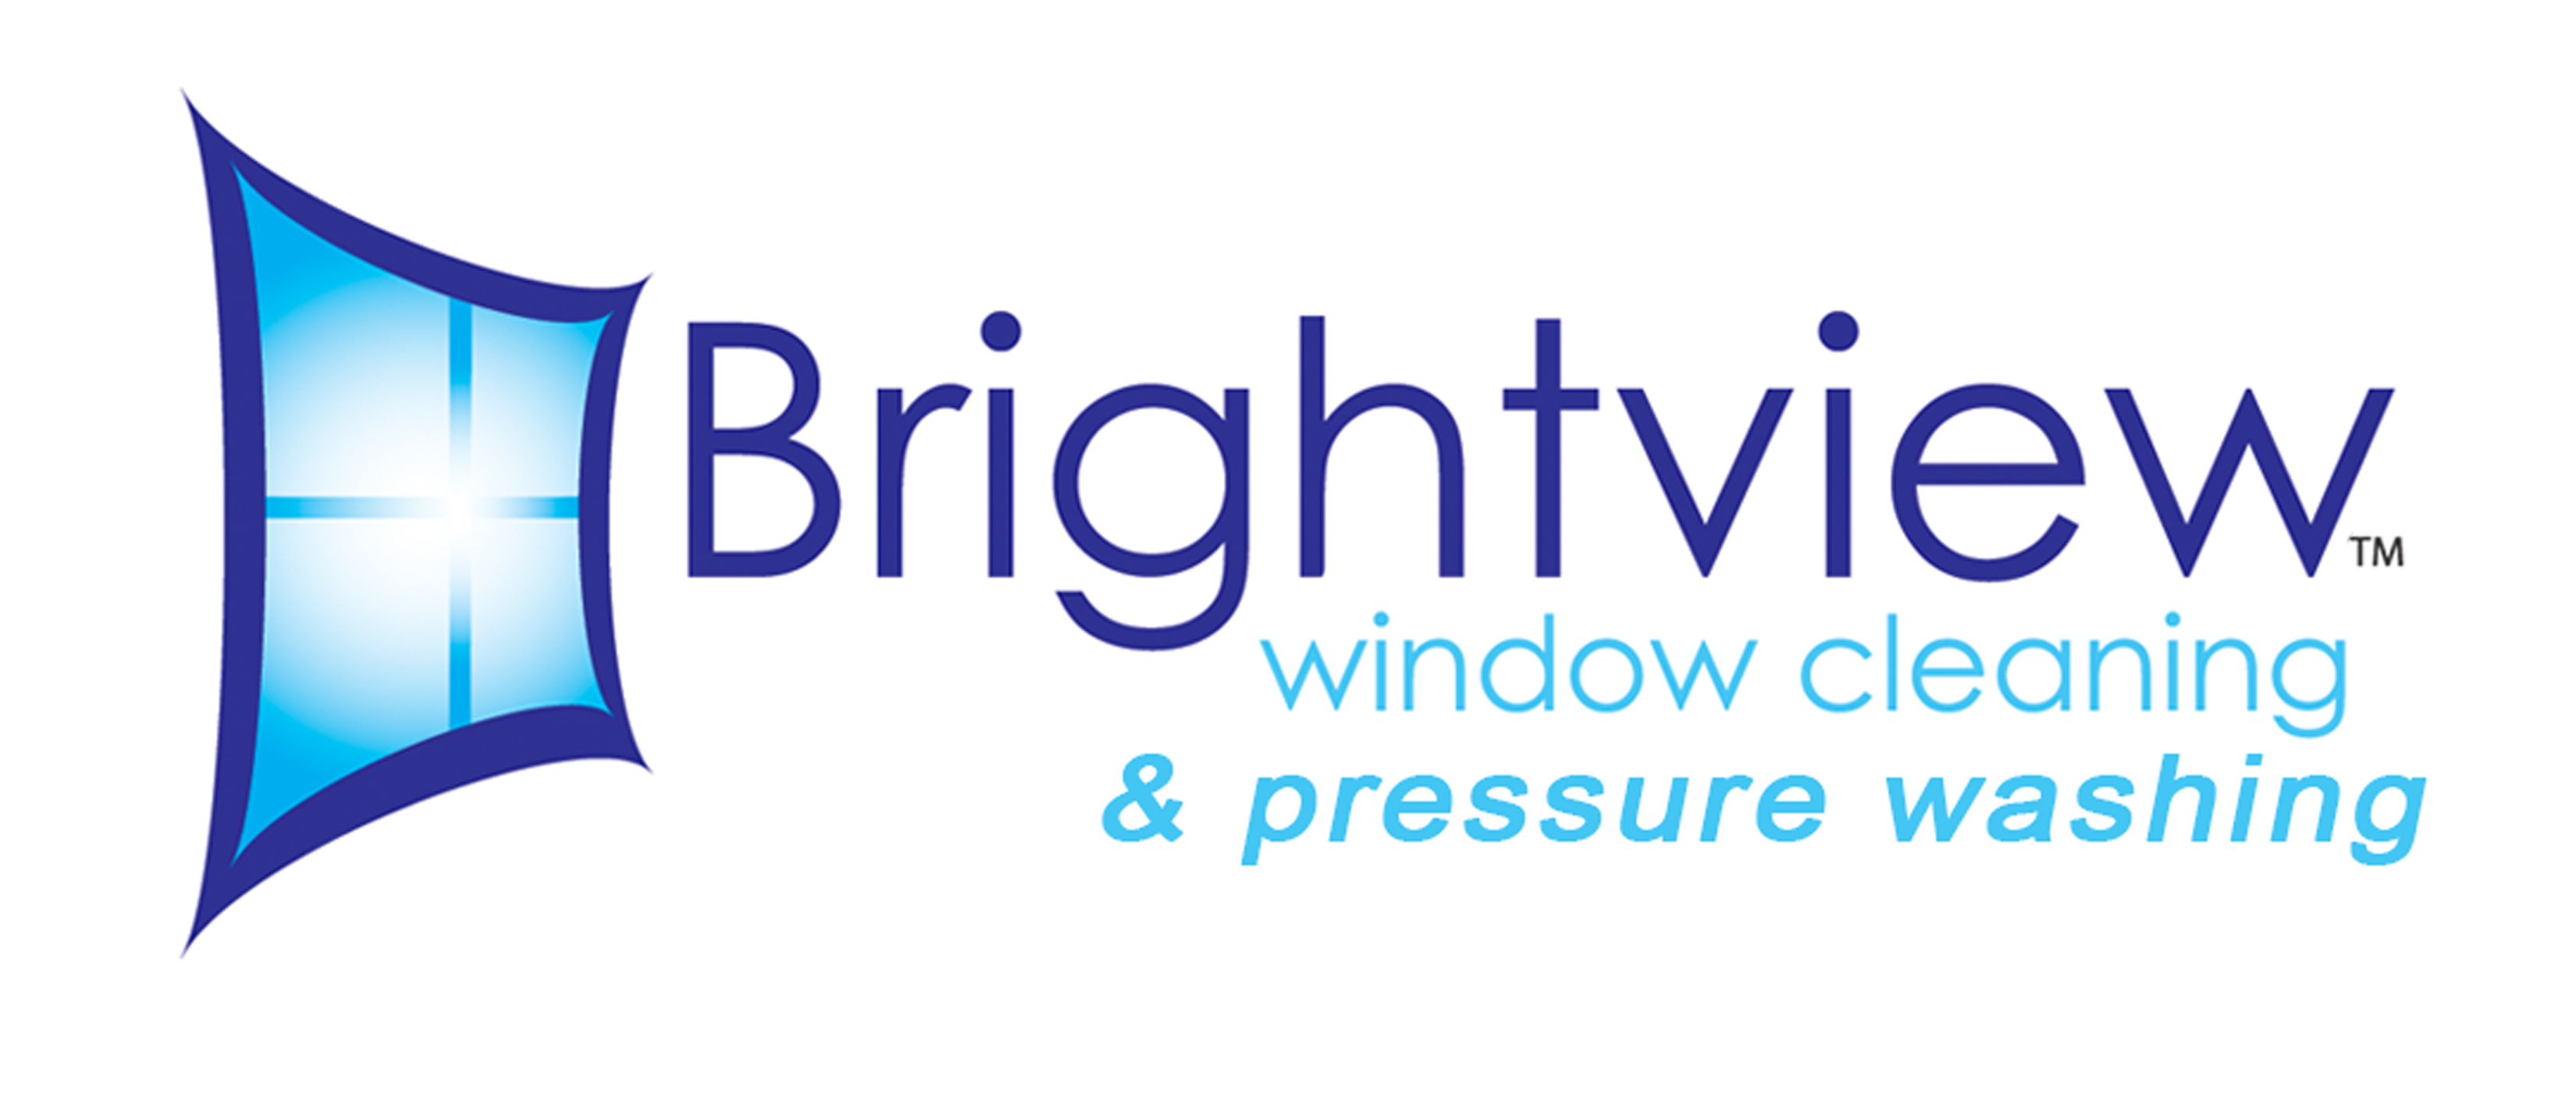 Brightview Window Cleaning and Pressure Washing logo